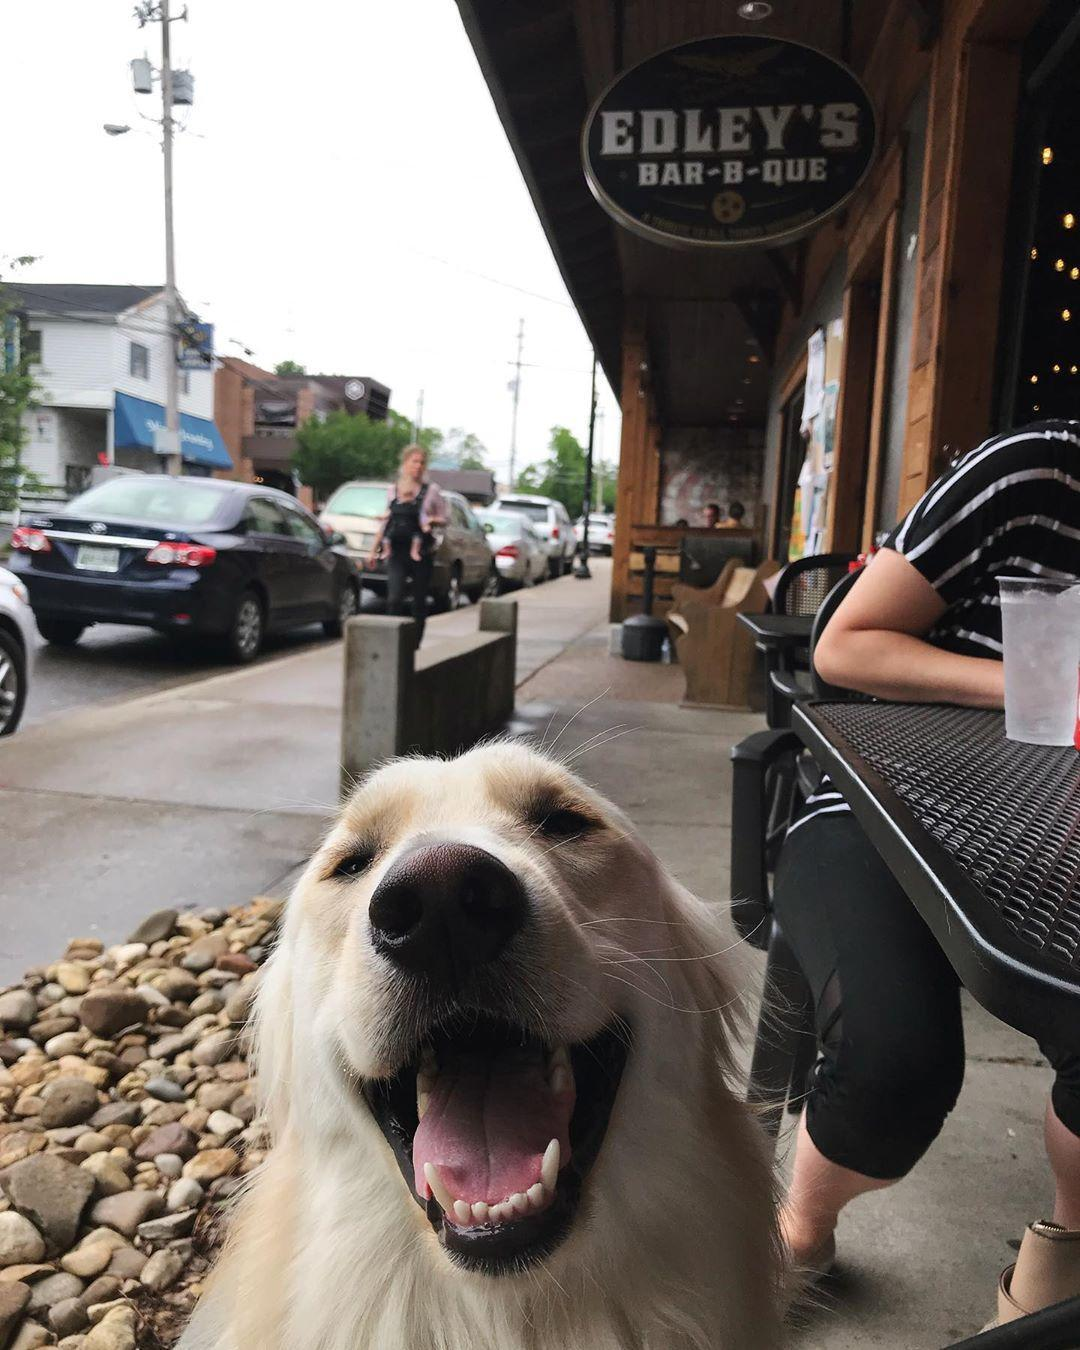 A happy Golden Retreiver smiles on the patio of Edley's BBQ in dog-friendly Nashville.